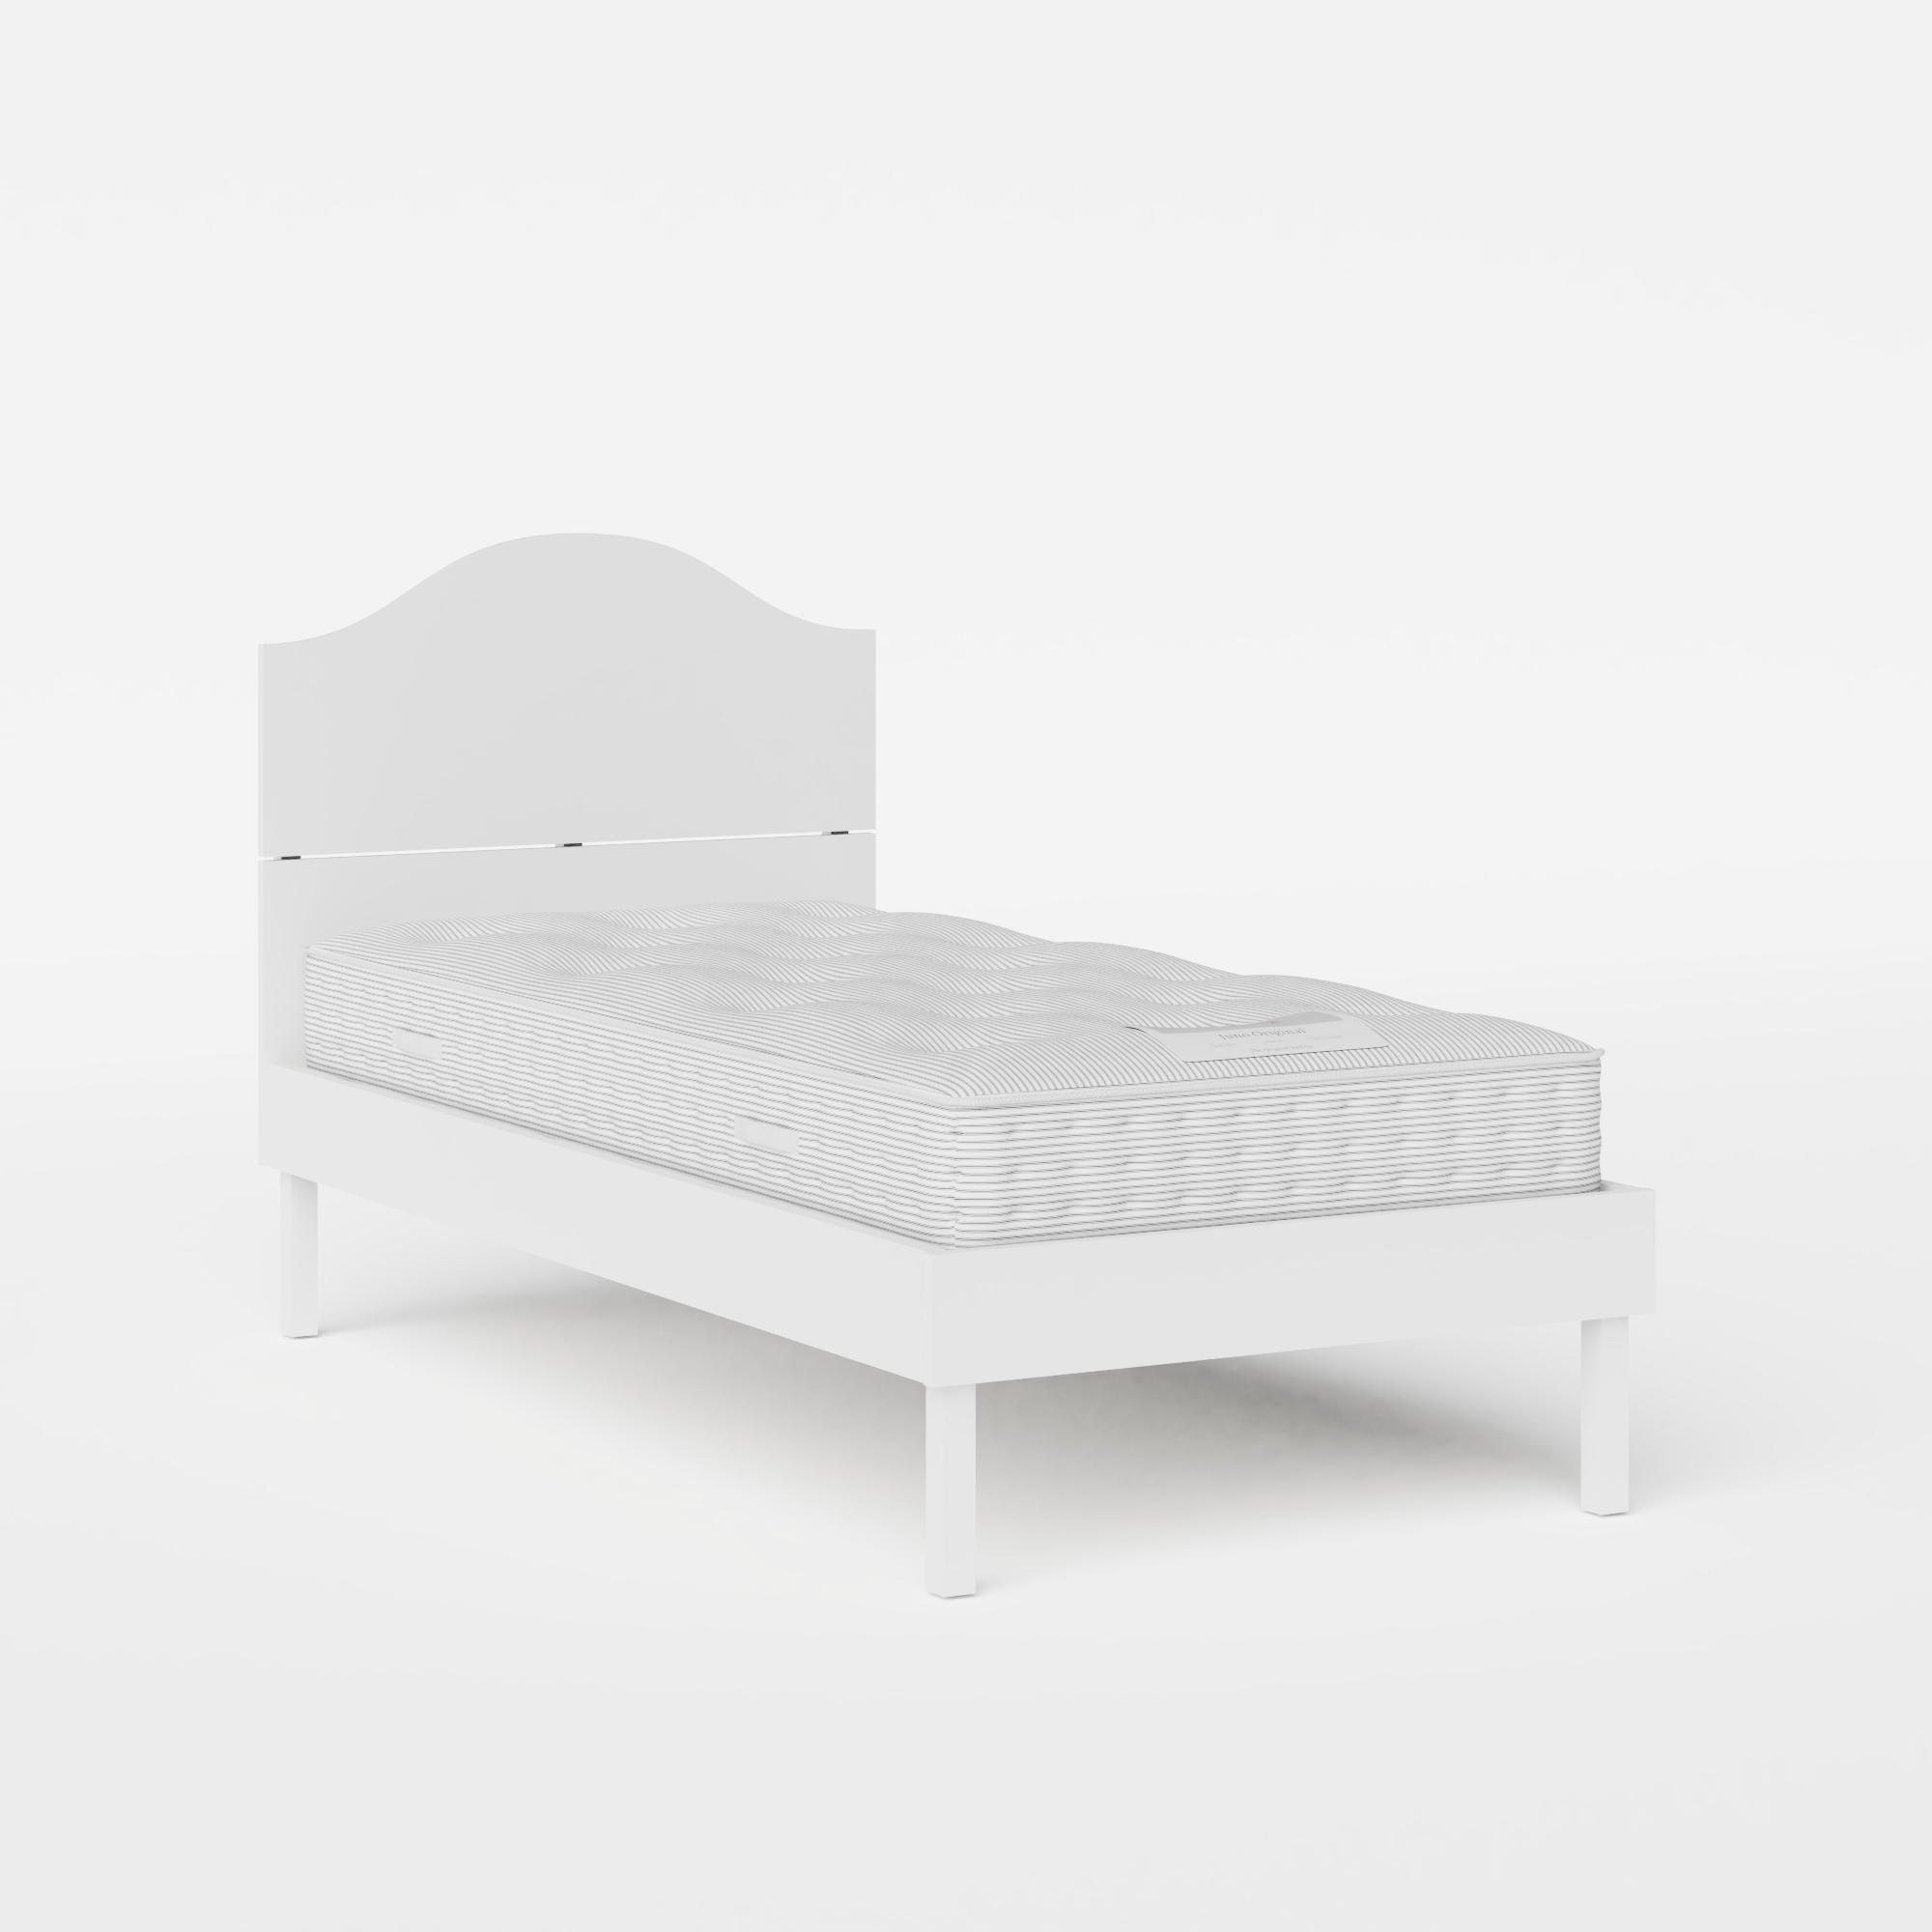 Yoshida Painted single painted wood bed in white with Juno mattress